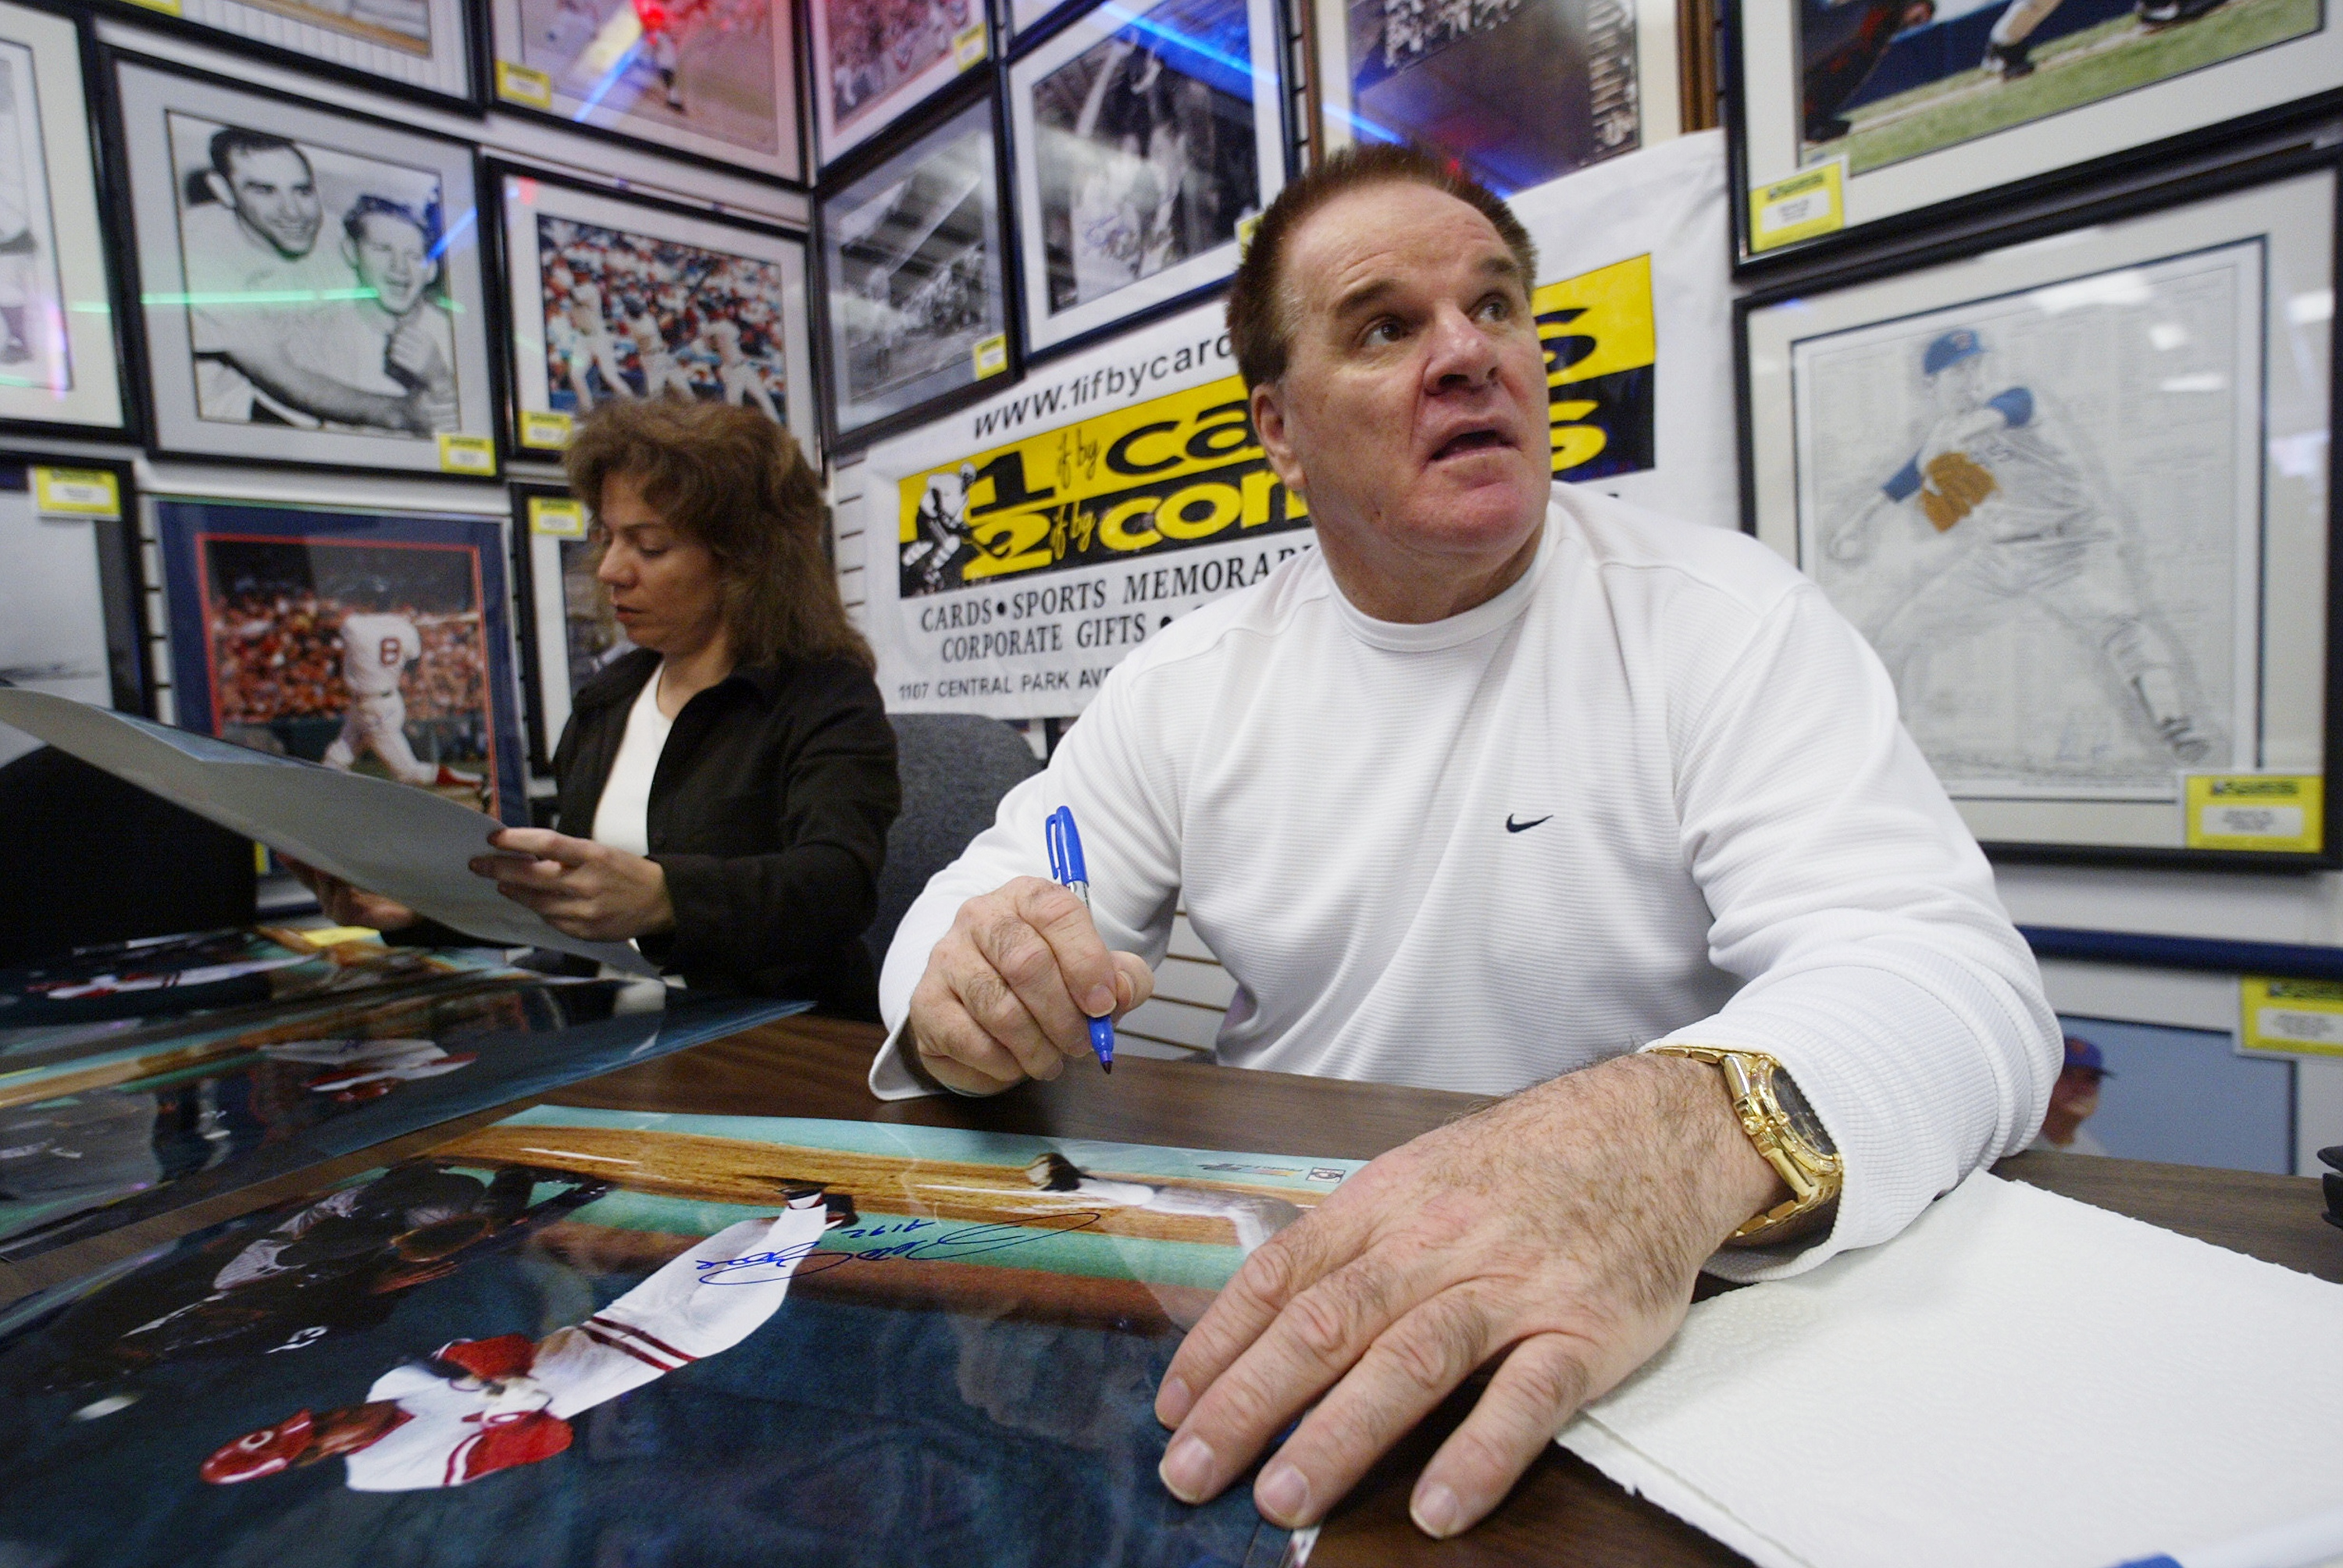 Pete Rose autographs baseball memorabilia at One if by Cards